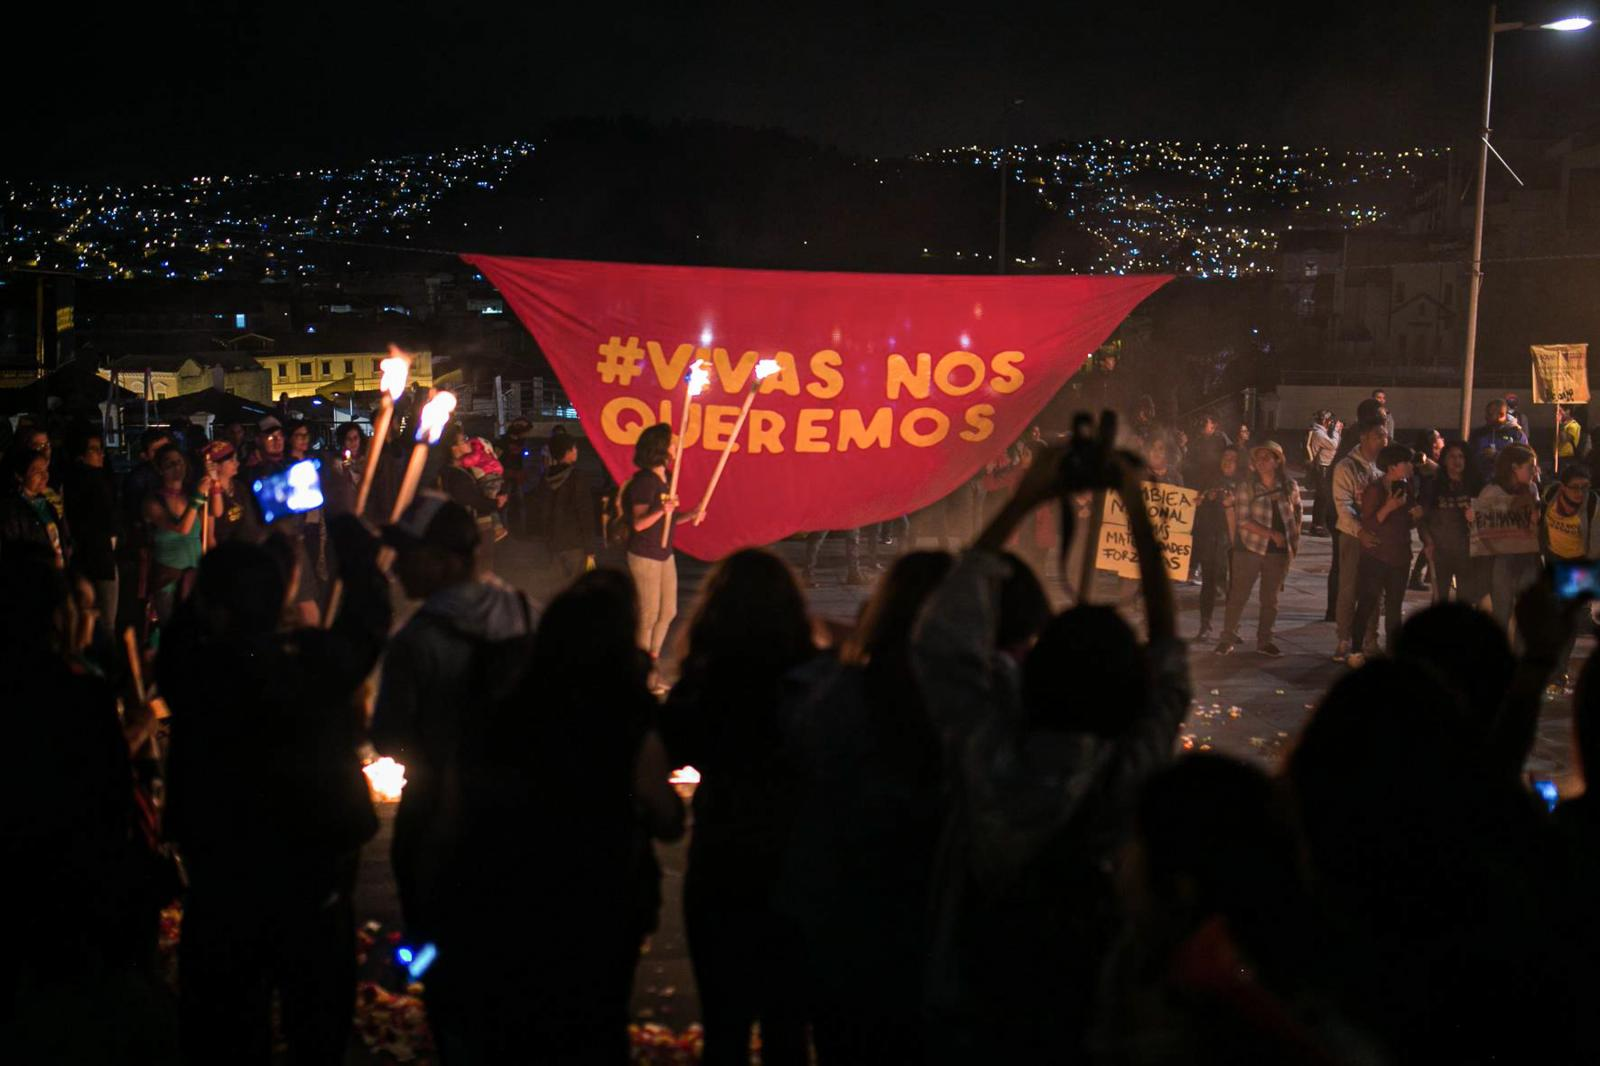 Demonstrators of the indigenous uprising in the afternoon of October 13, 2019, retreat in the middle of the rain before the launching of several tear gas bombs by the national police on the grounds of the Ecuadorean Culture House. Quito, Ecuador.